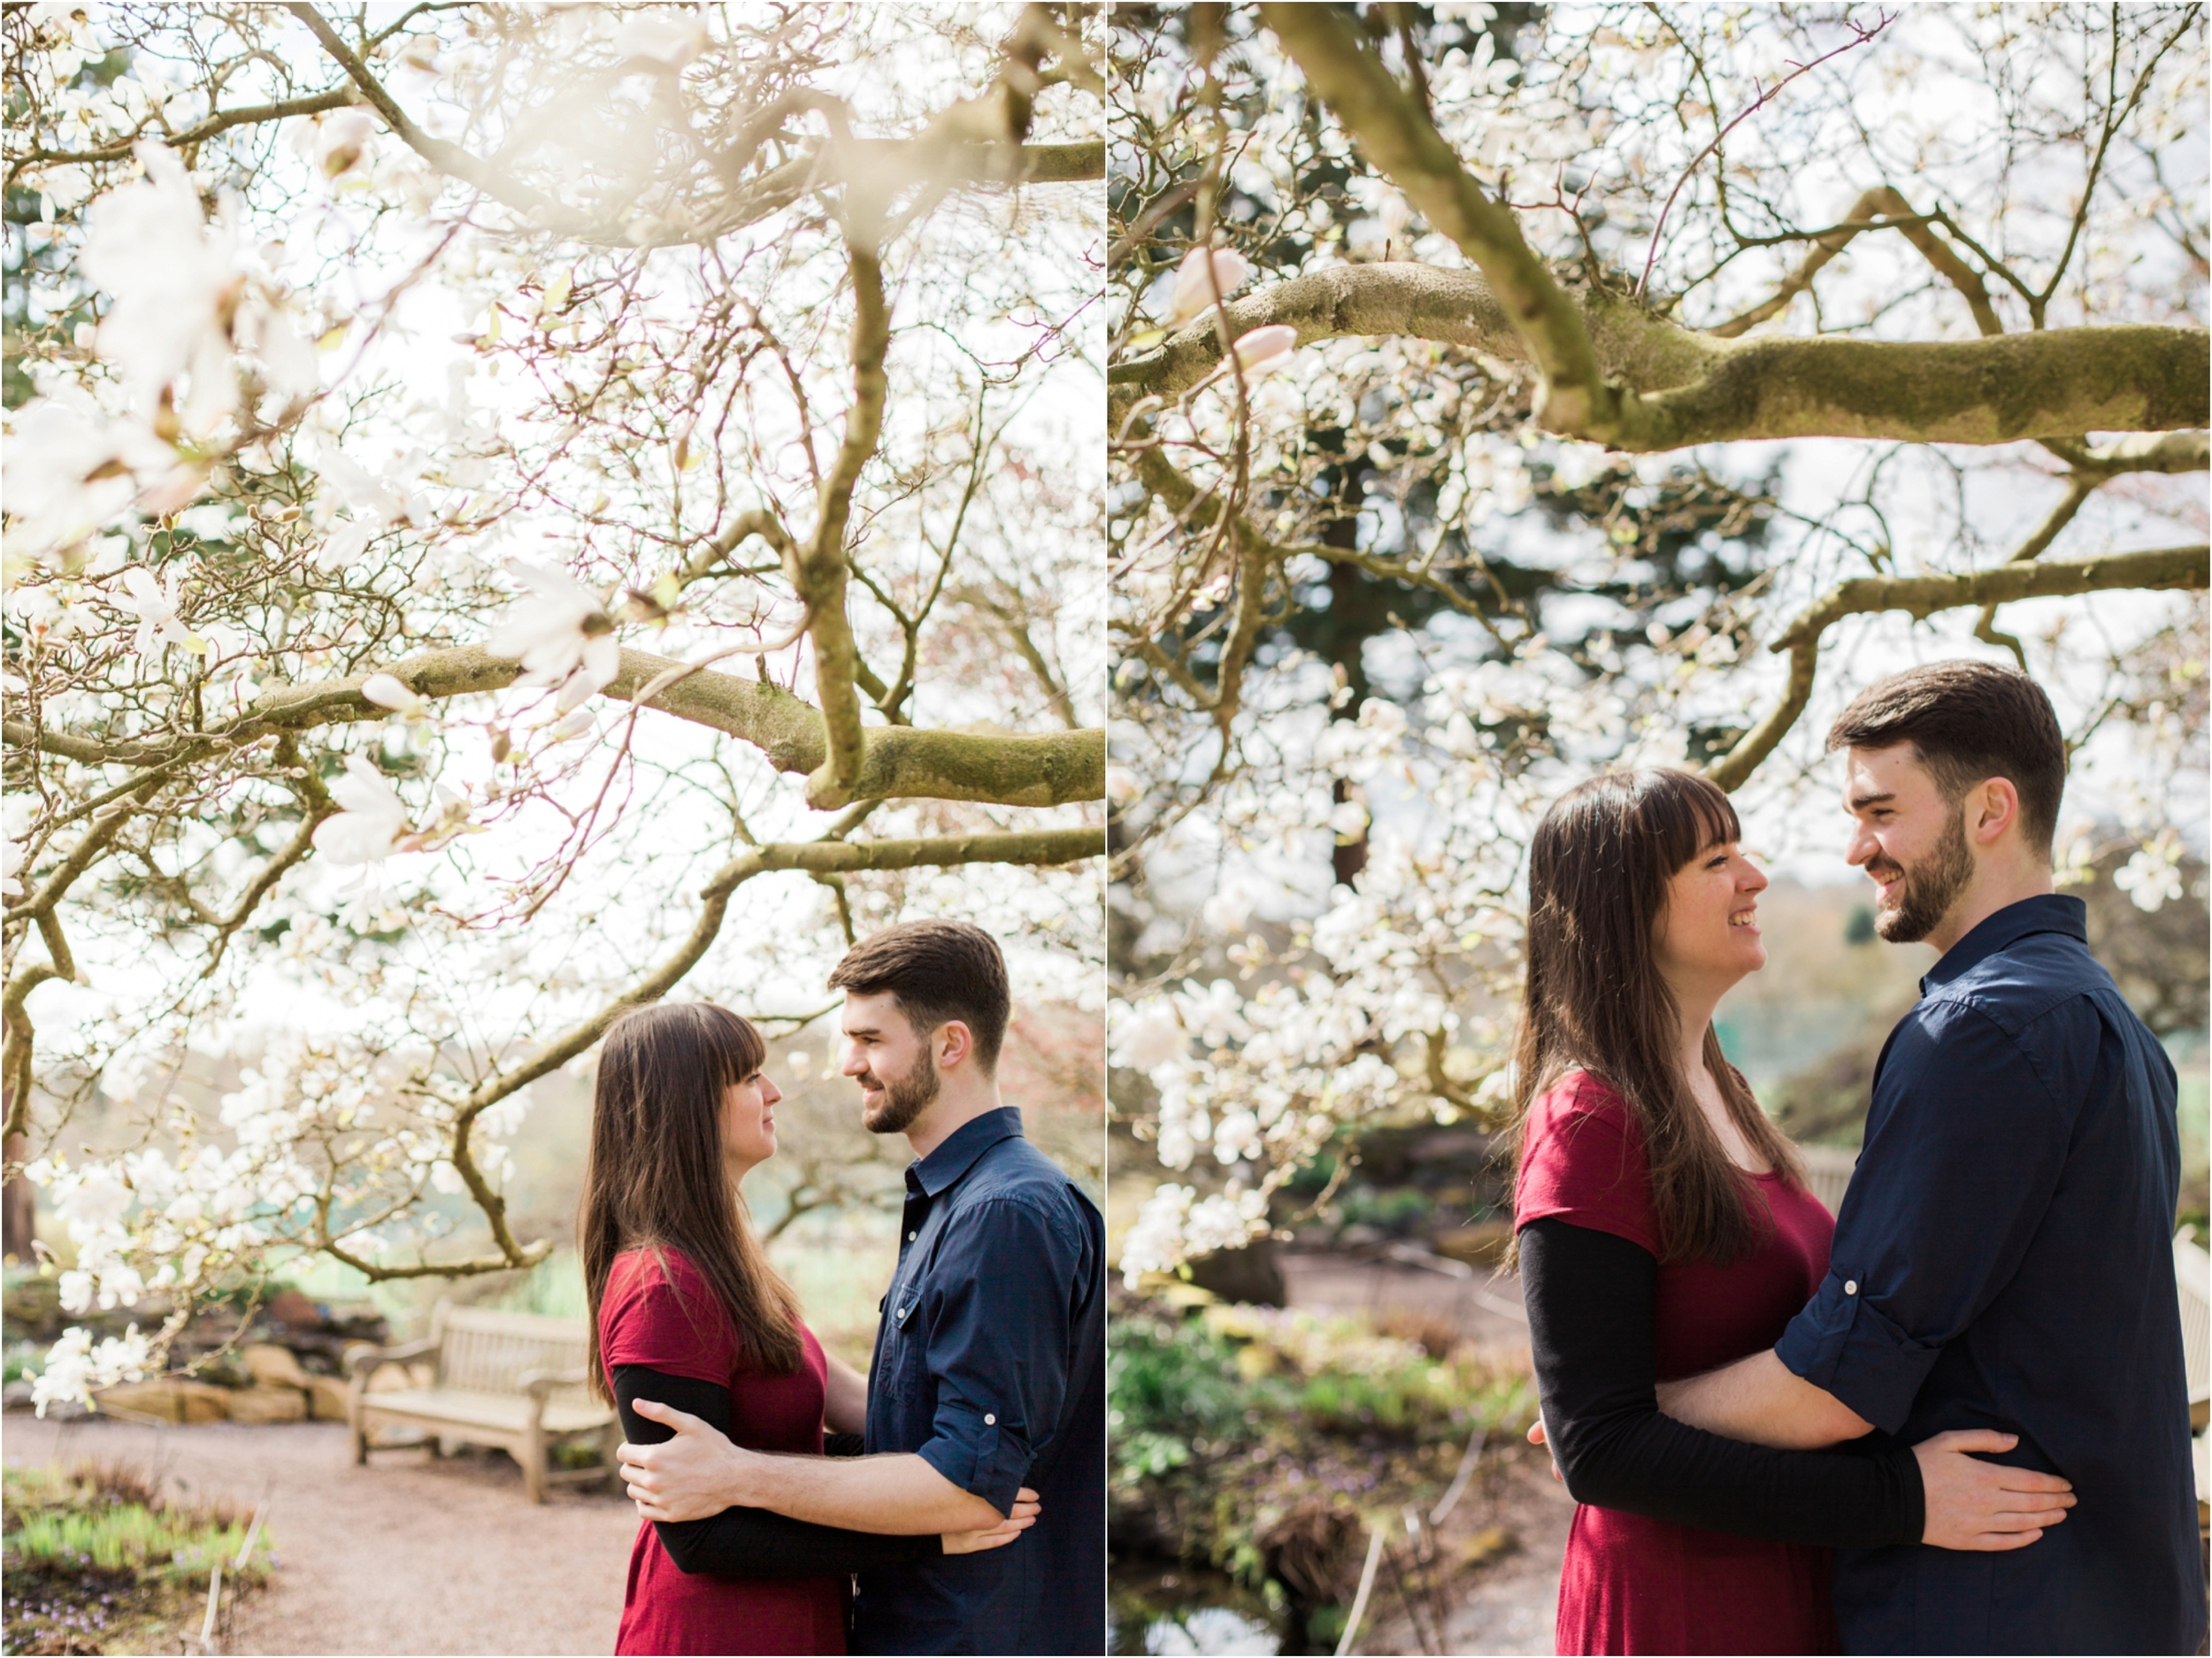 Sophie Evans Photography, Alice & Nathanael Botanical Gardens Engagement Shoot. Warwickshire Wedding Photographer (17).jpg